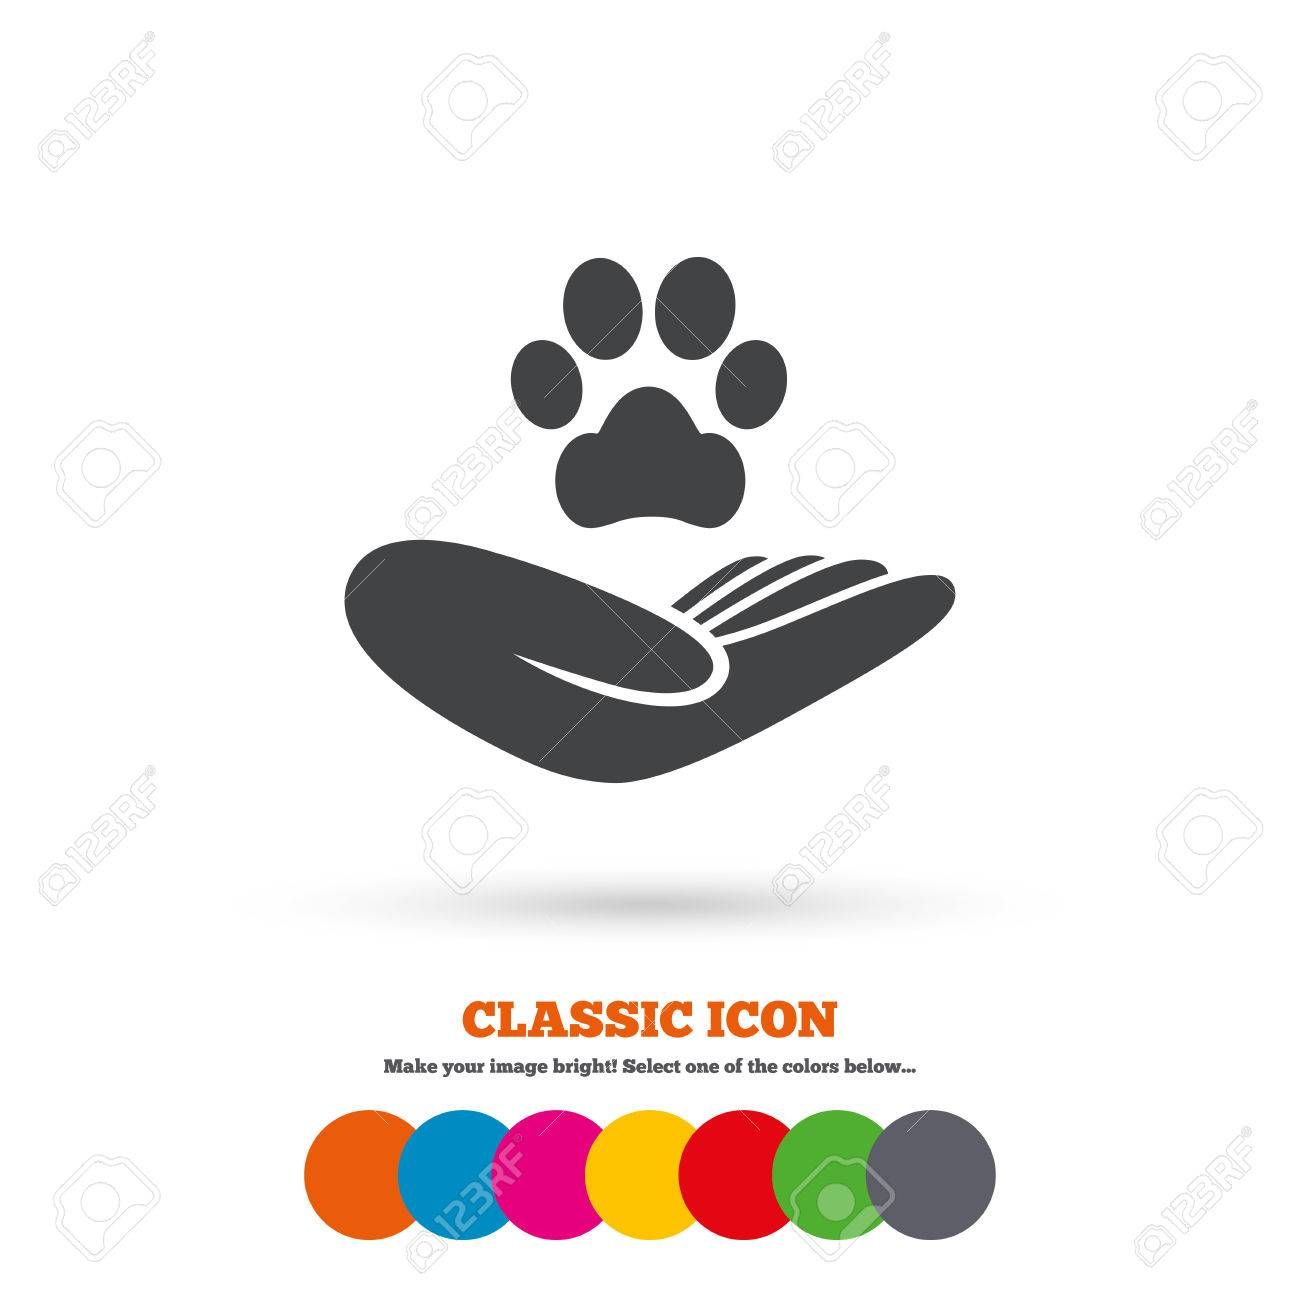 Shelter pets sign icon. Hand holds paw symbol. Animal